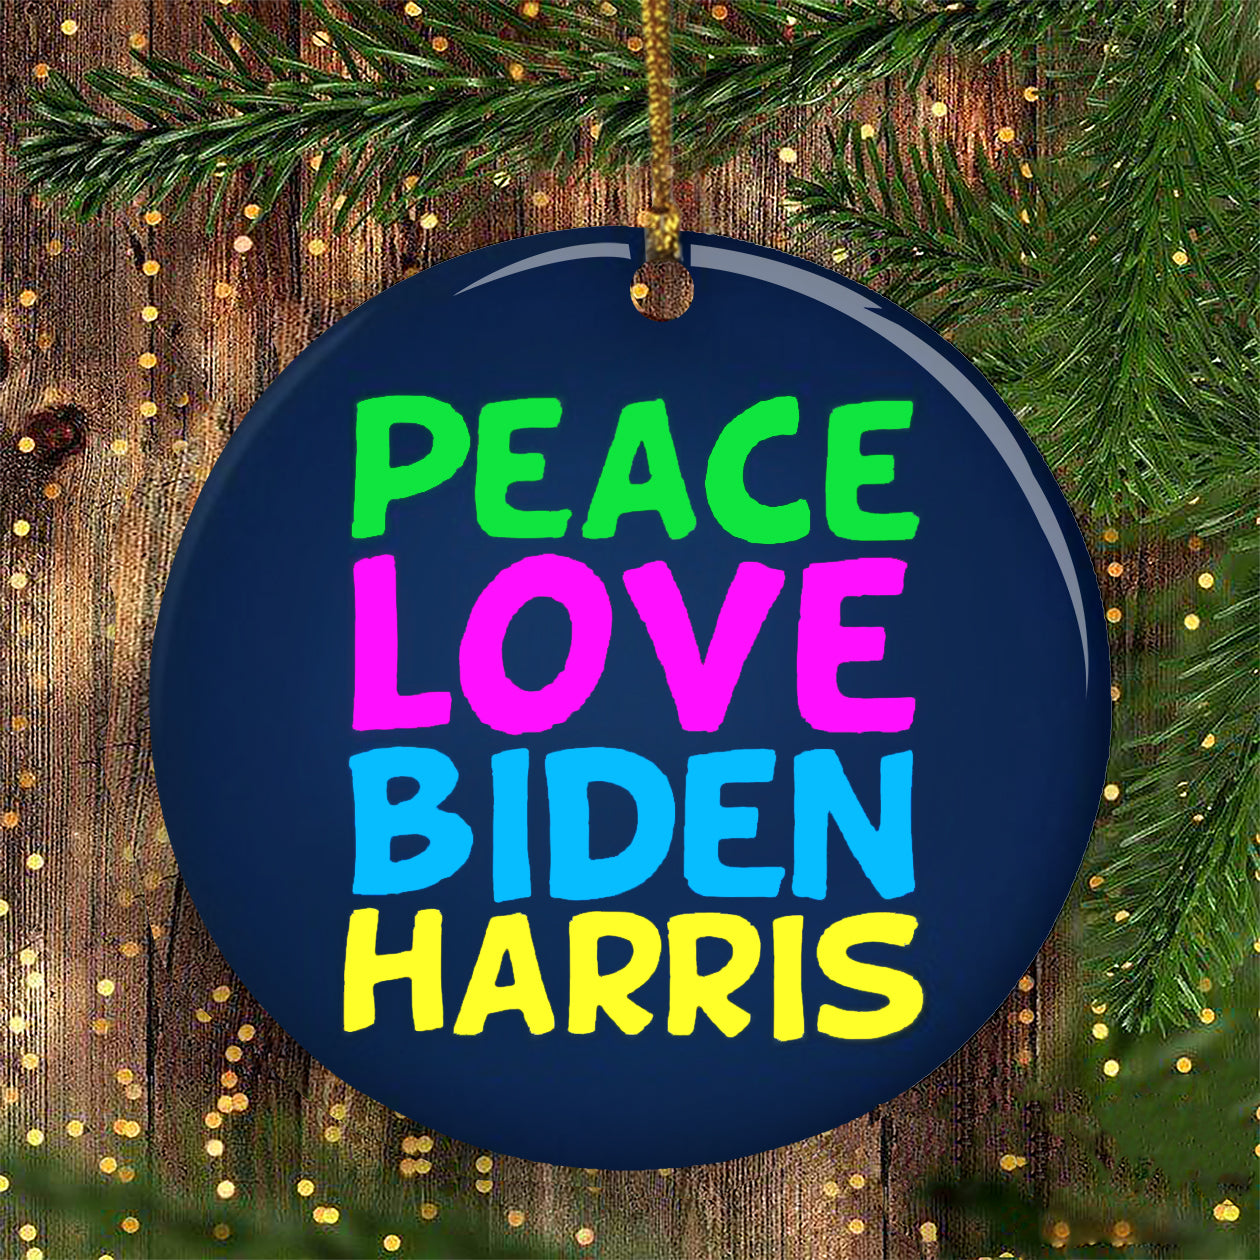 Peace Love Biden Harris Ornament Biden Harris Christmas Ornament Merch Family Xmas Ornament